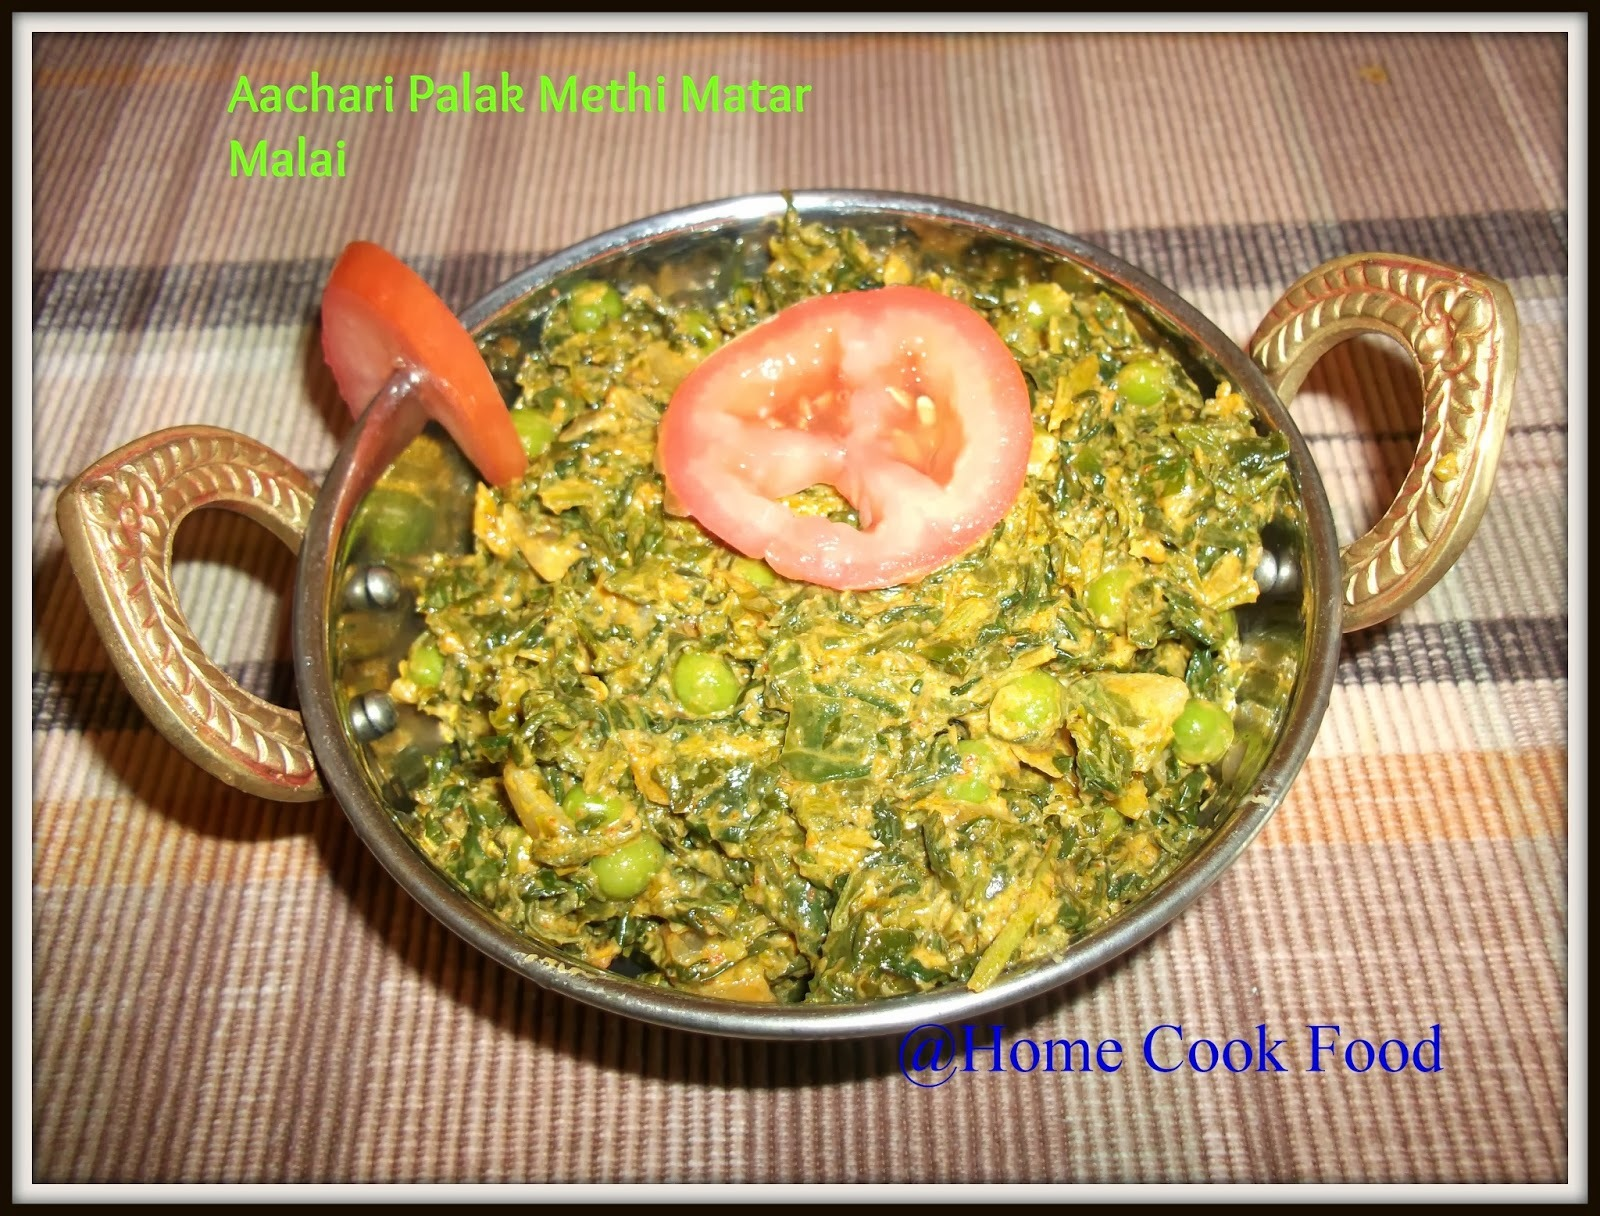 Aachari Palak Methi Matar Malai / Spinach, Peas, Fenugreek leaves in pickling spices